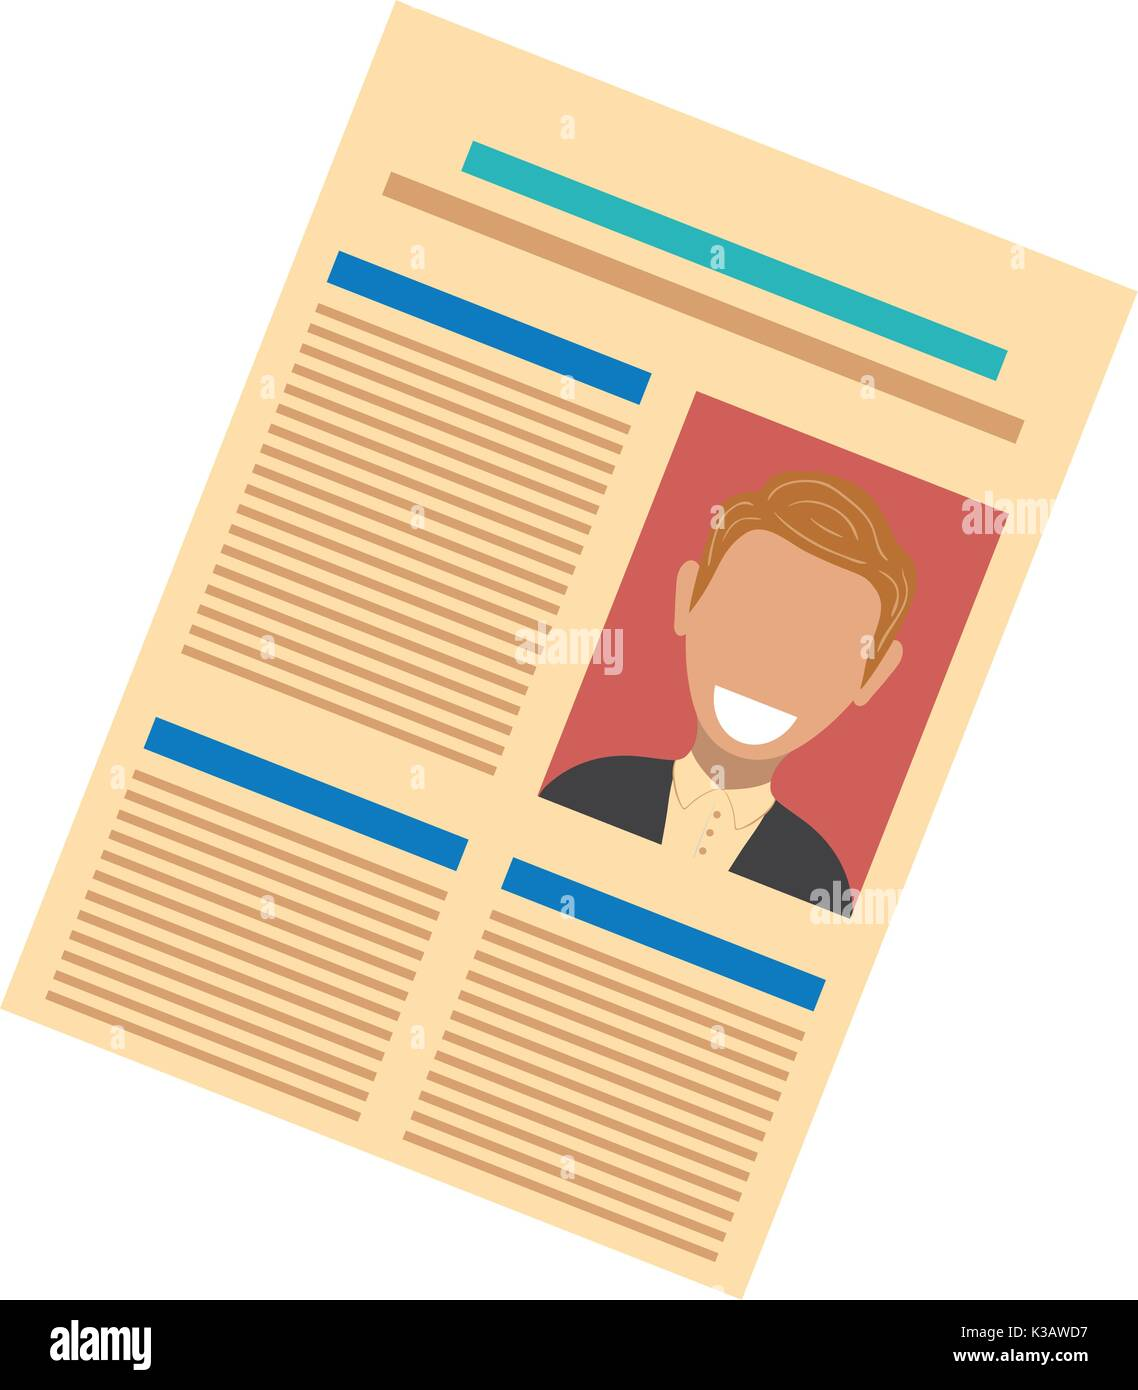 newspaper  vector illustration - Stock Image